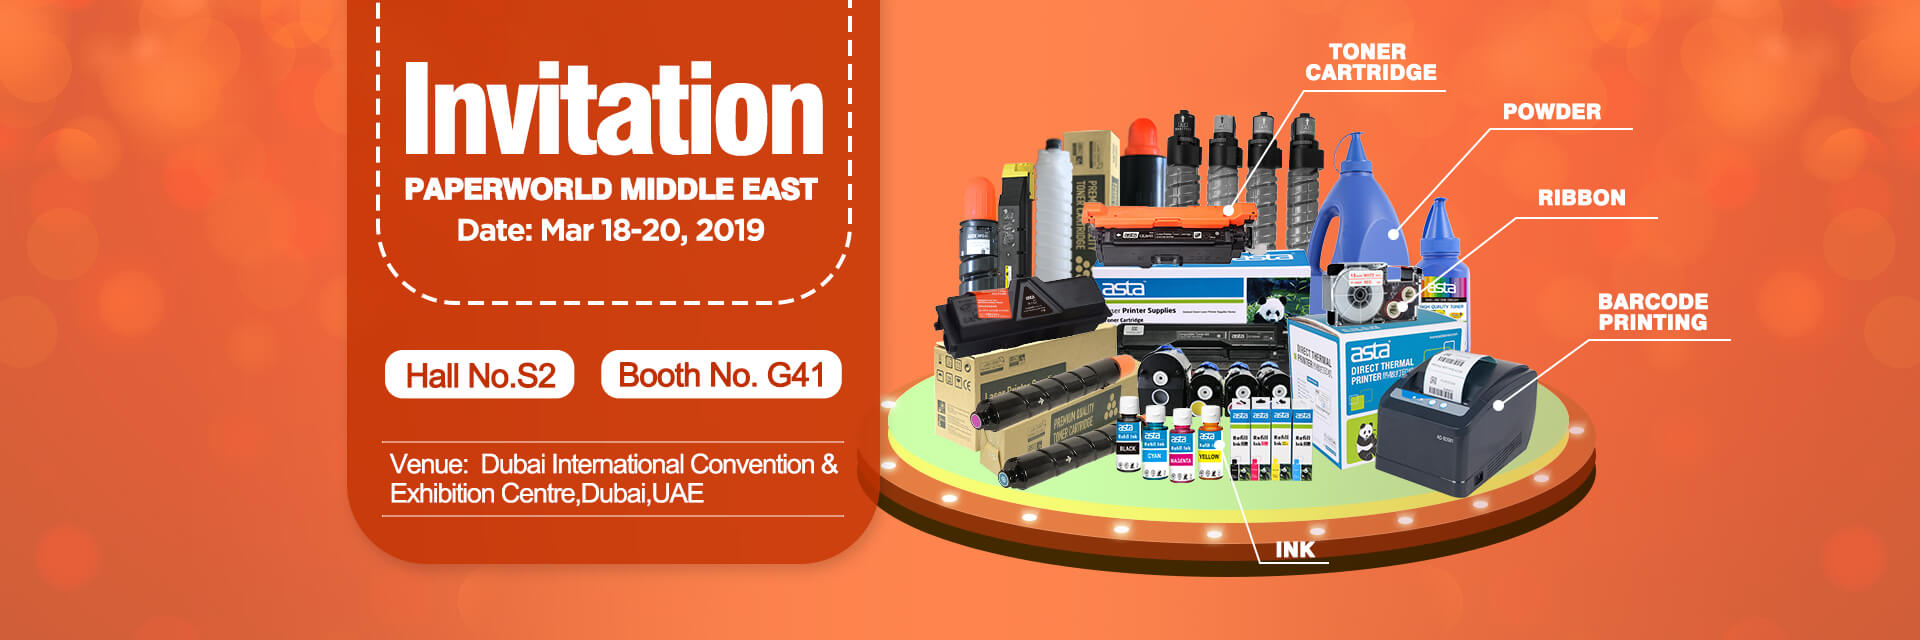 2019 Middle East Stationery Exhibition